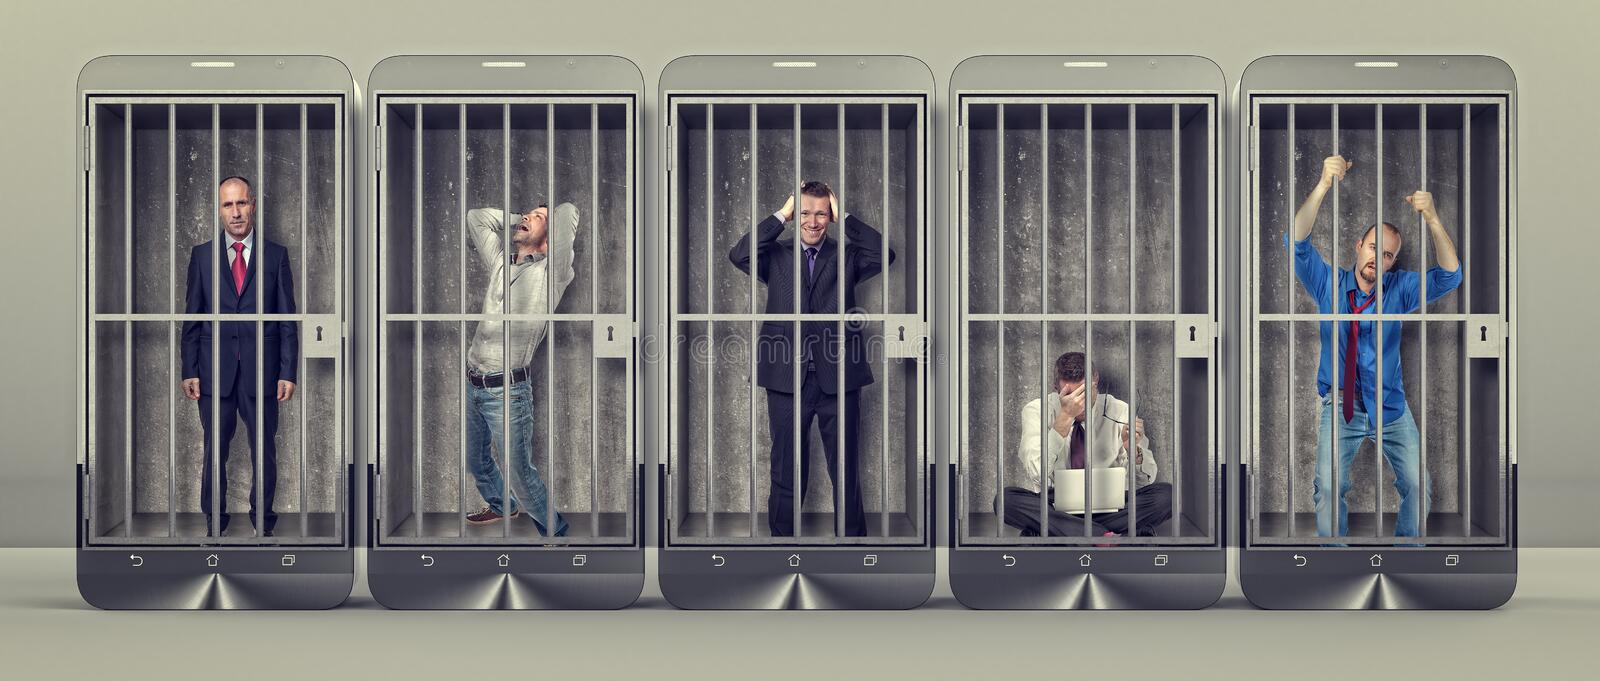 Slave of smartphone royalty free stock images